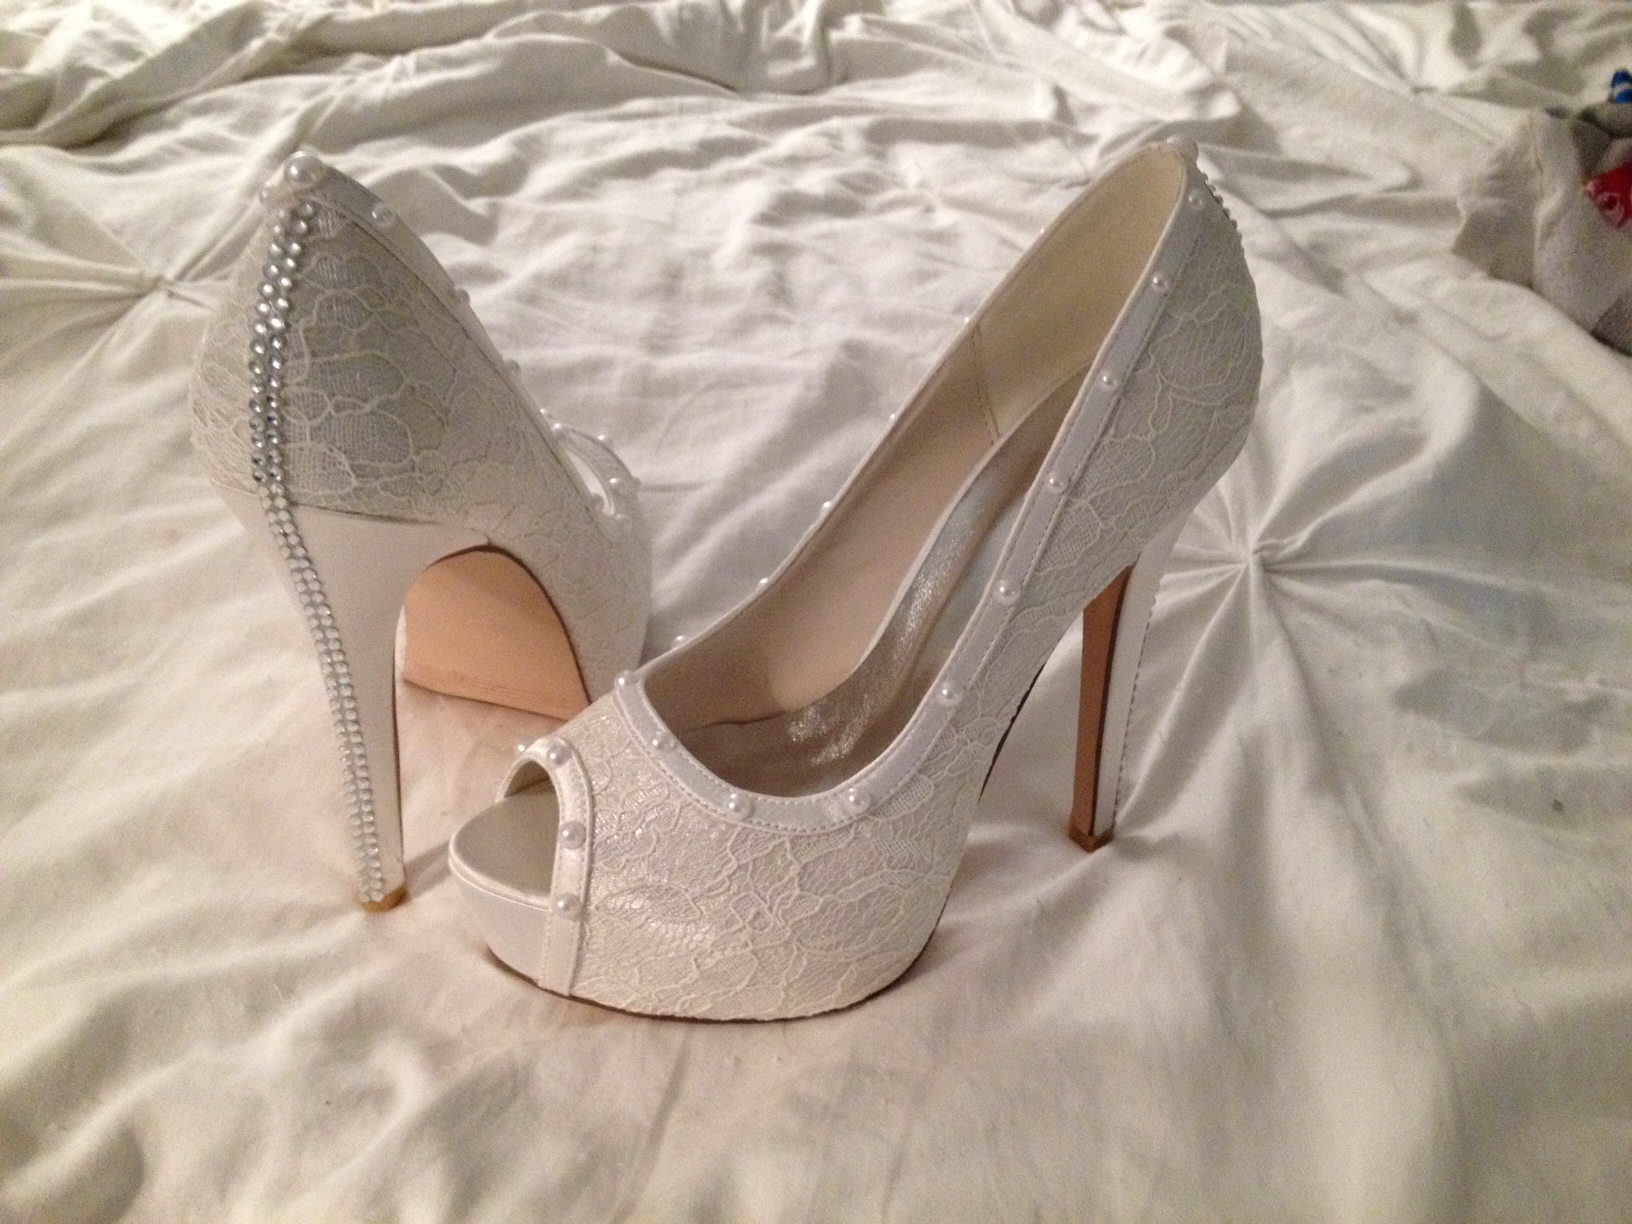 DIY Bridal Shoes – My Lace Platform Pumps Inspired by $1,200 Rene Caovilla Stilettos